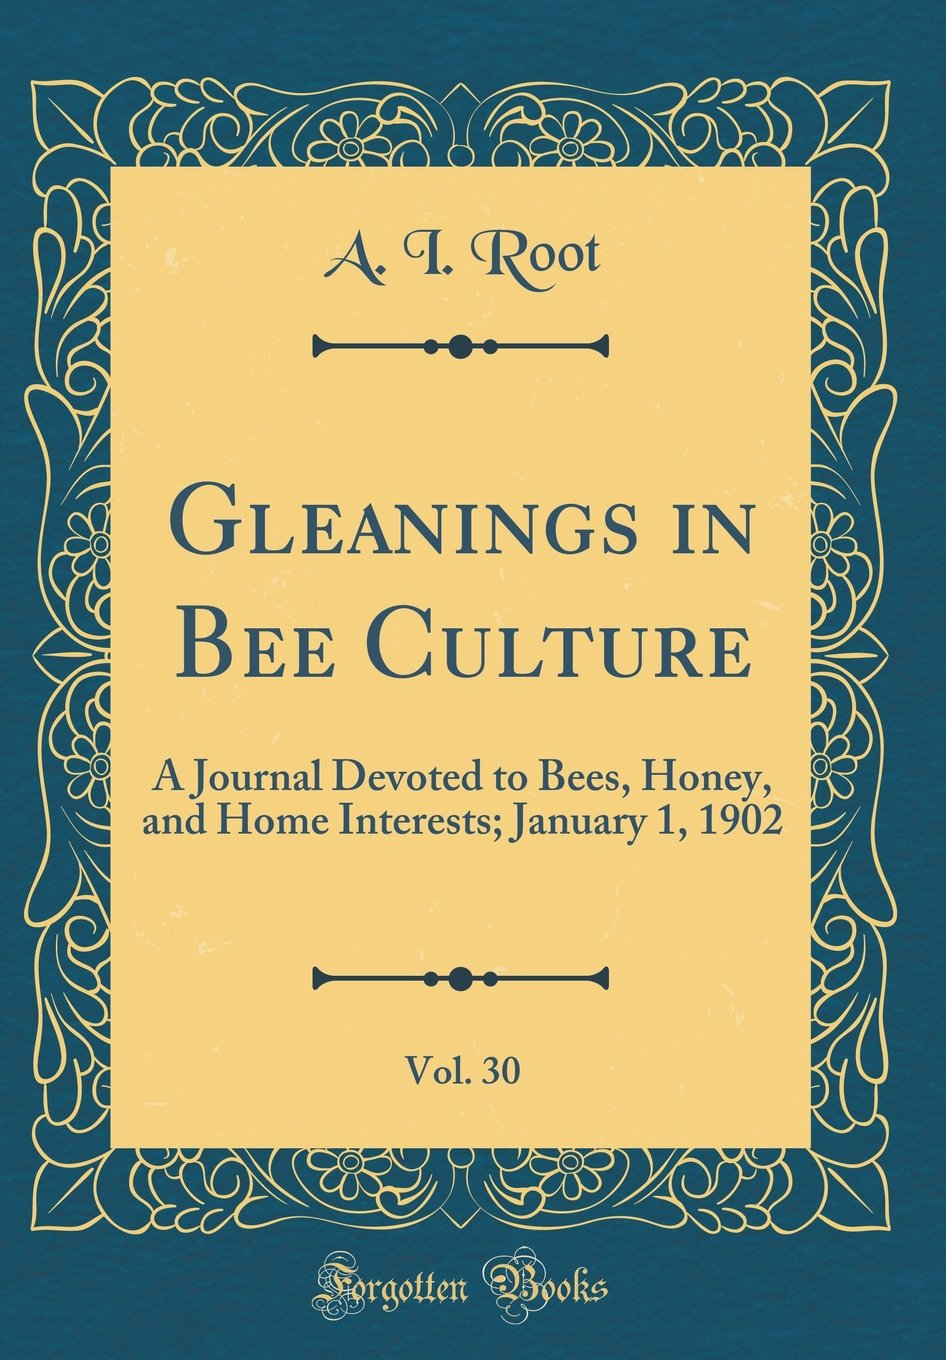 Gleanings in Bee Culture, Vol. 30: A Journal Devoted to Bees, Honey, and Home Interests; January 1, 1902 (Classic Reprint) pdf